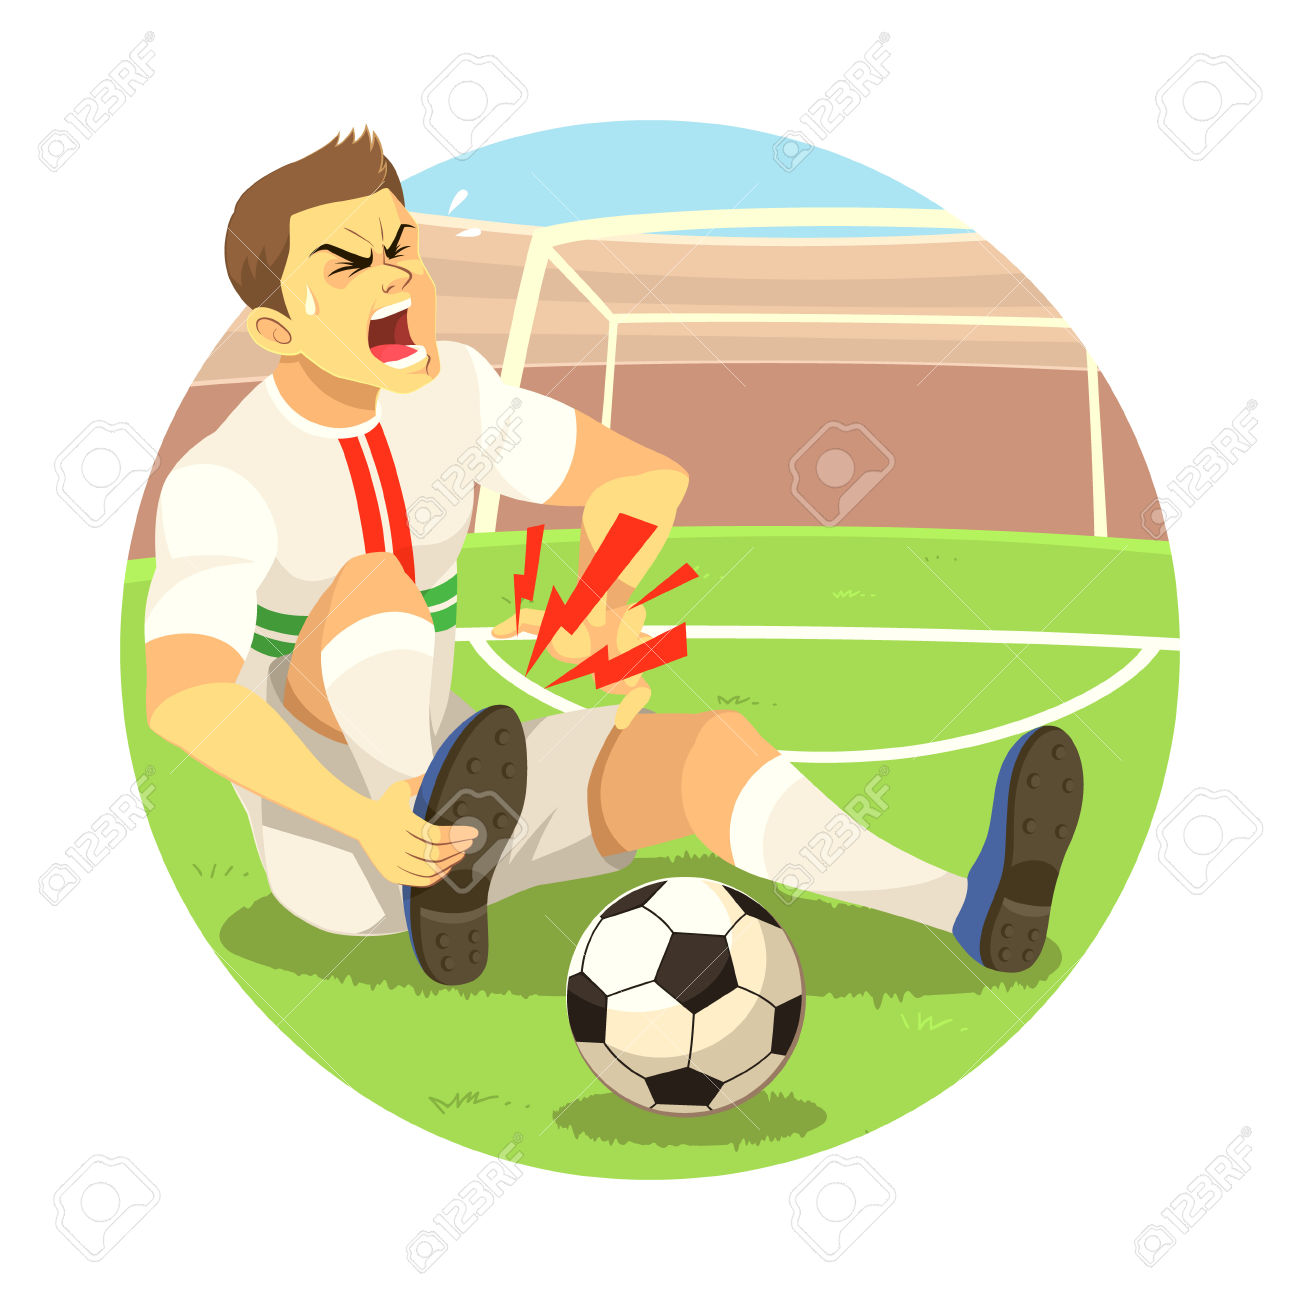 Injury Clip Art Free.